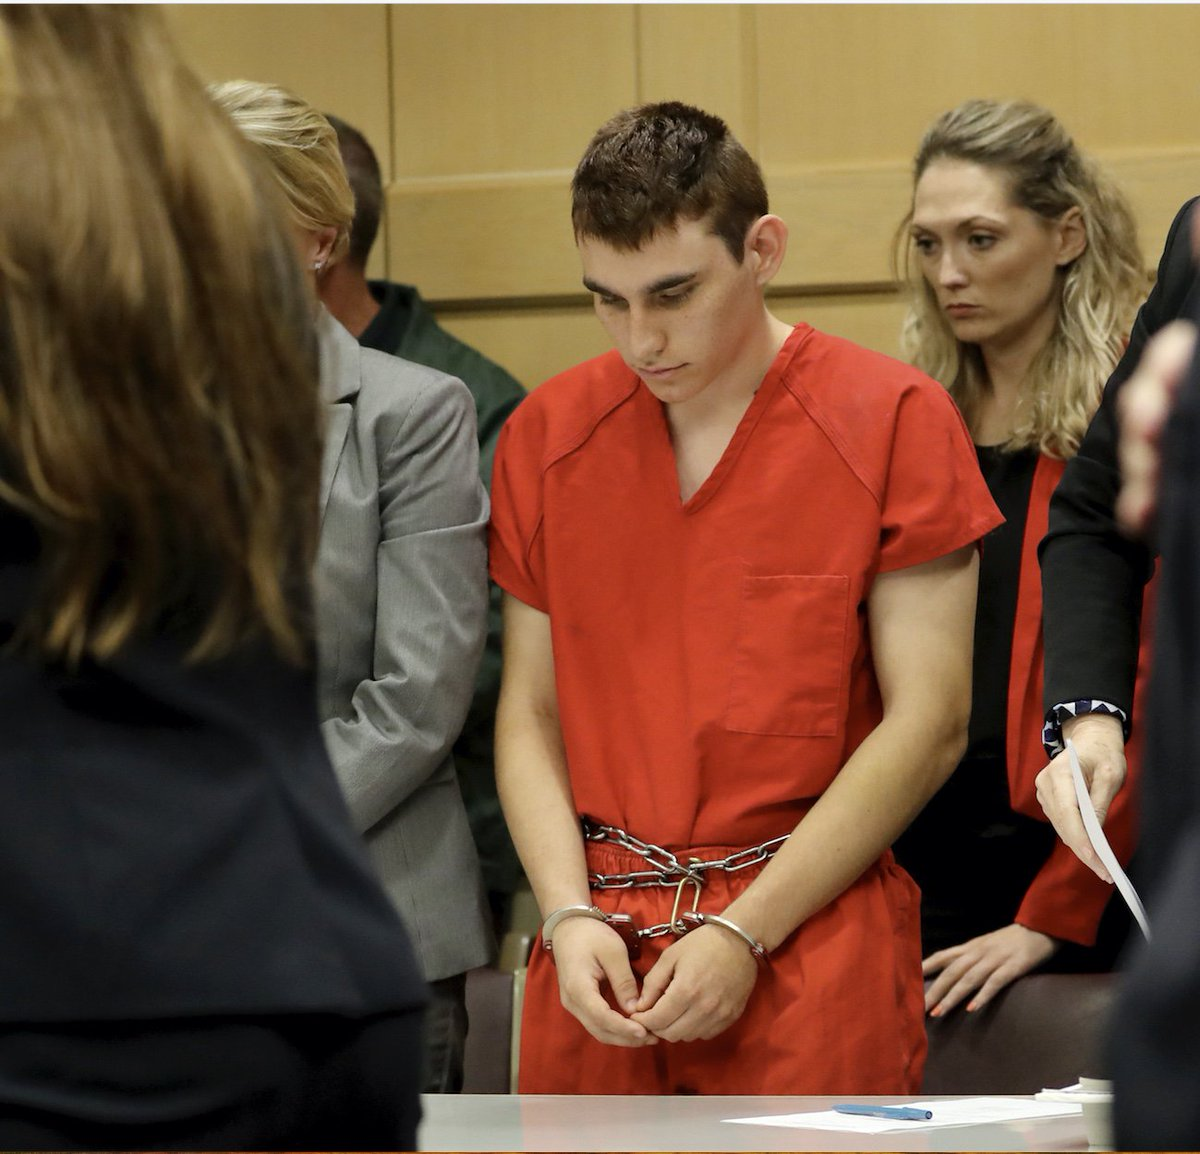 truth-of-parkland-mass-school-shooting-comes-out-4